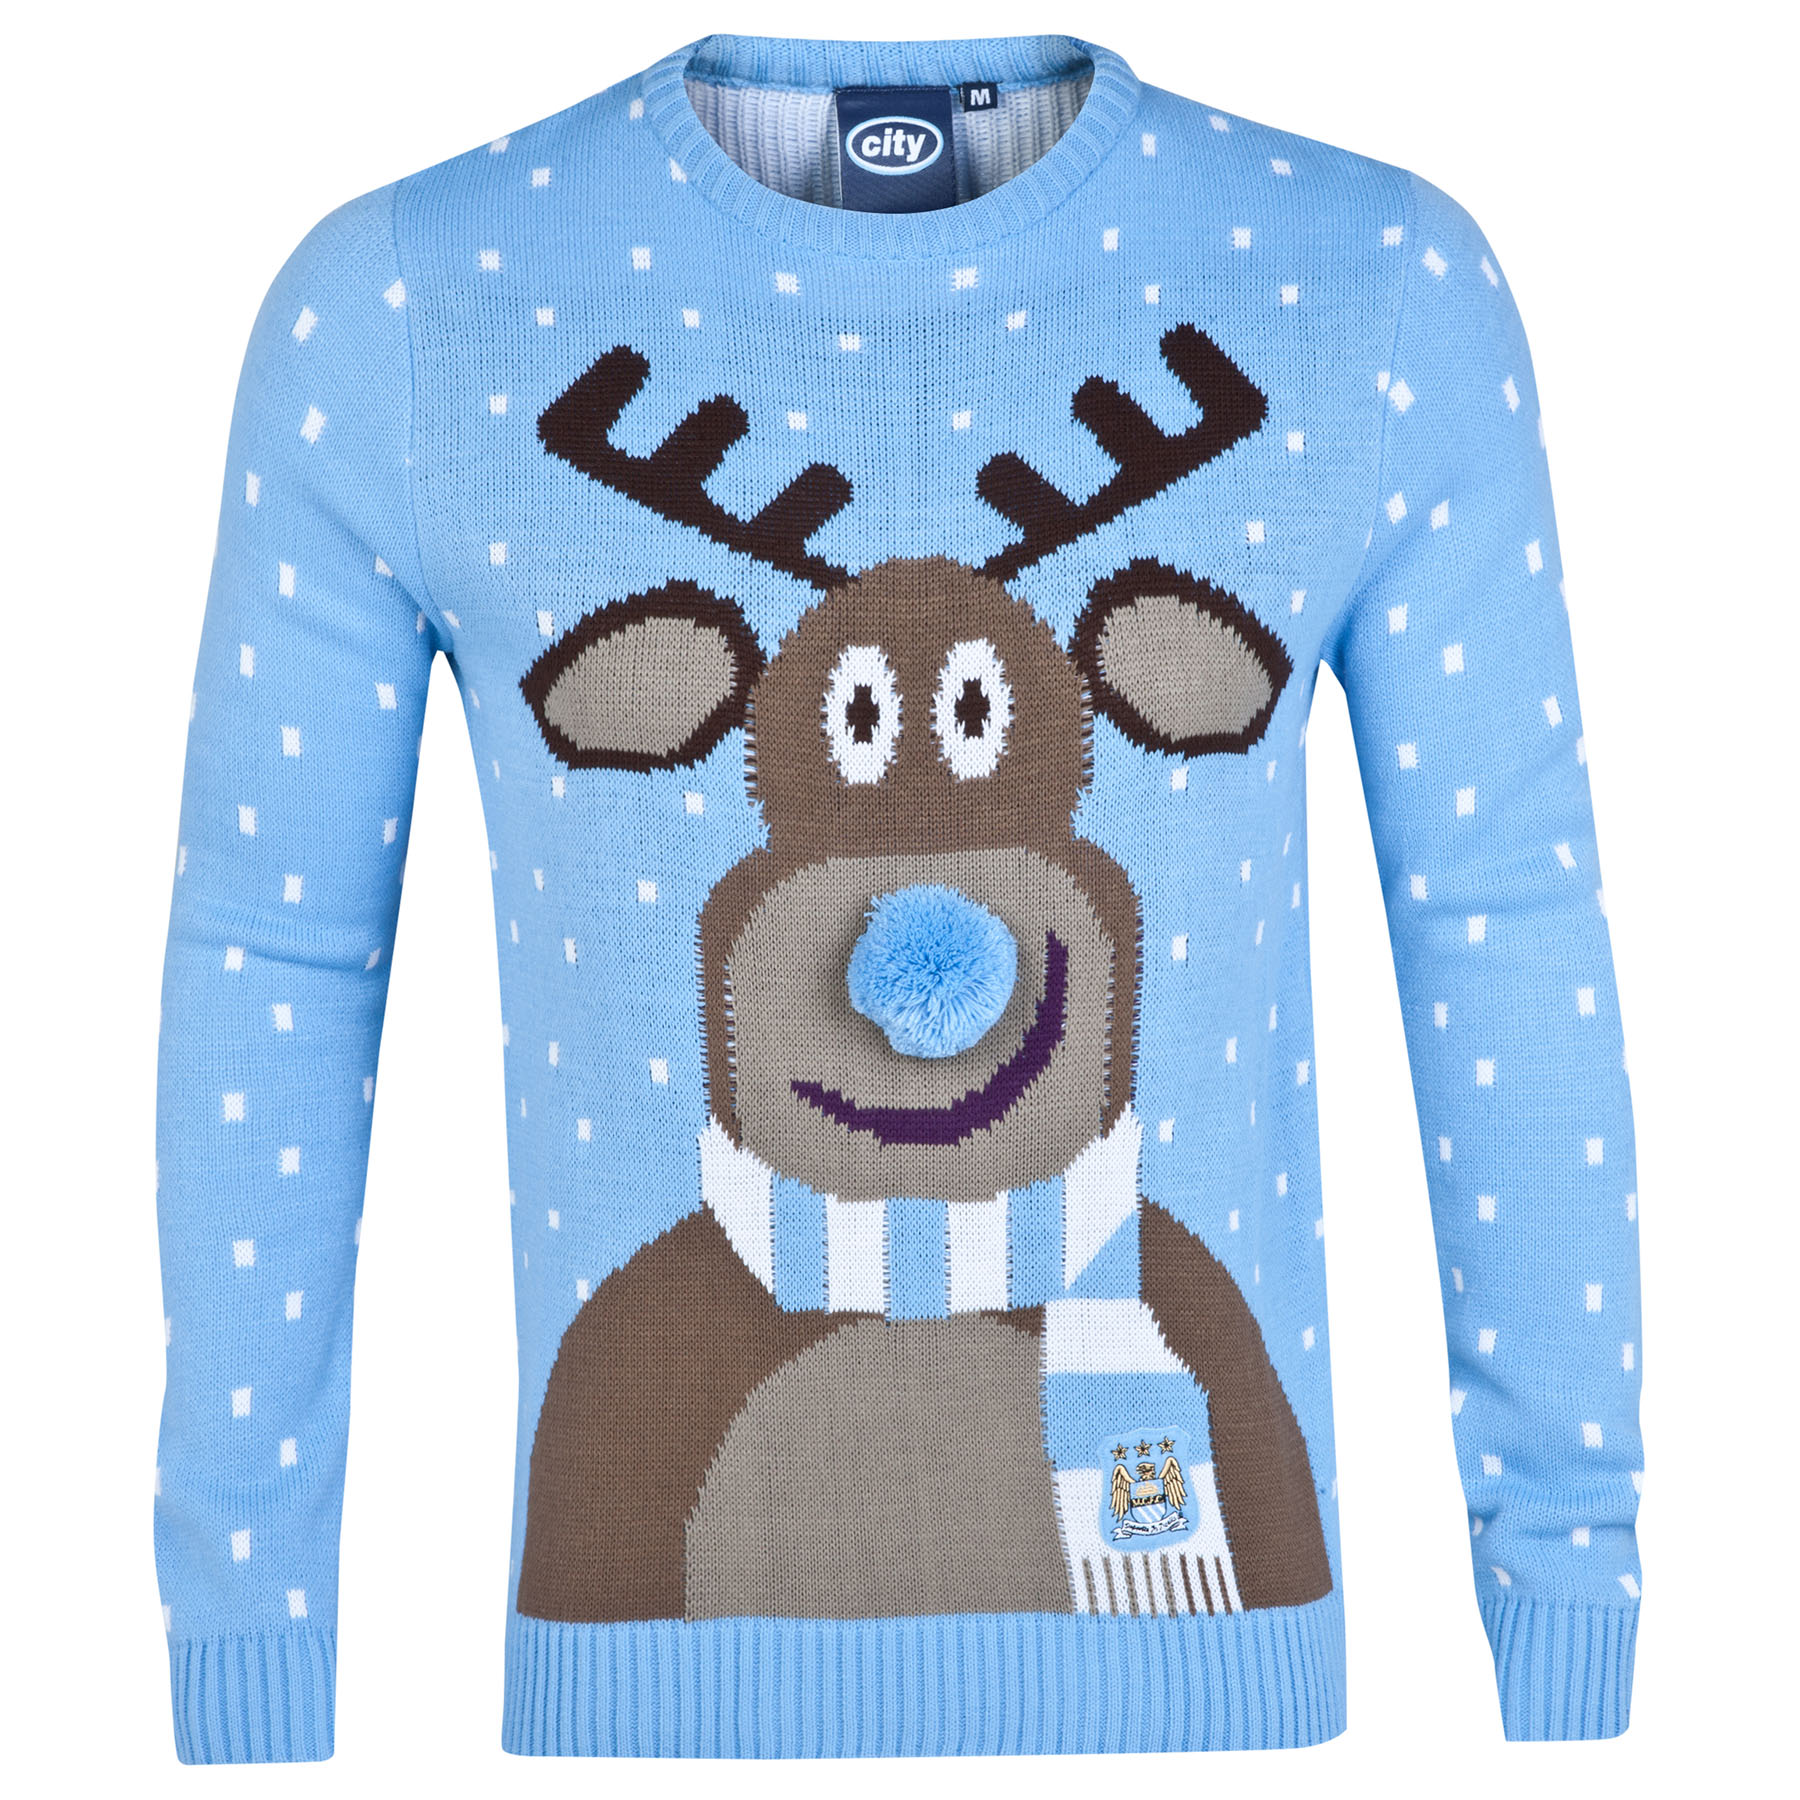 Manchester City Christmas Jumper - Sky - Junior